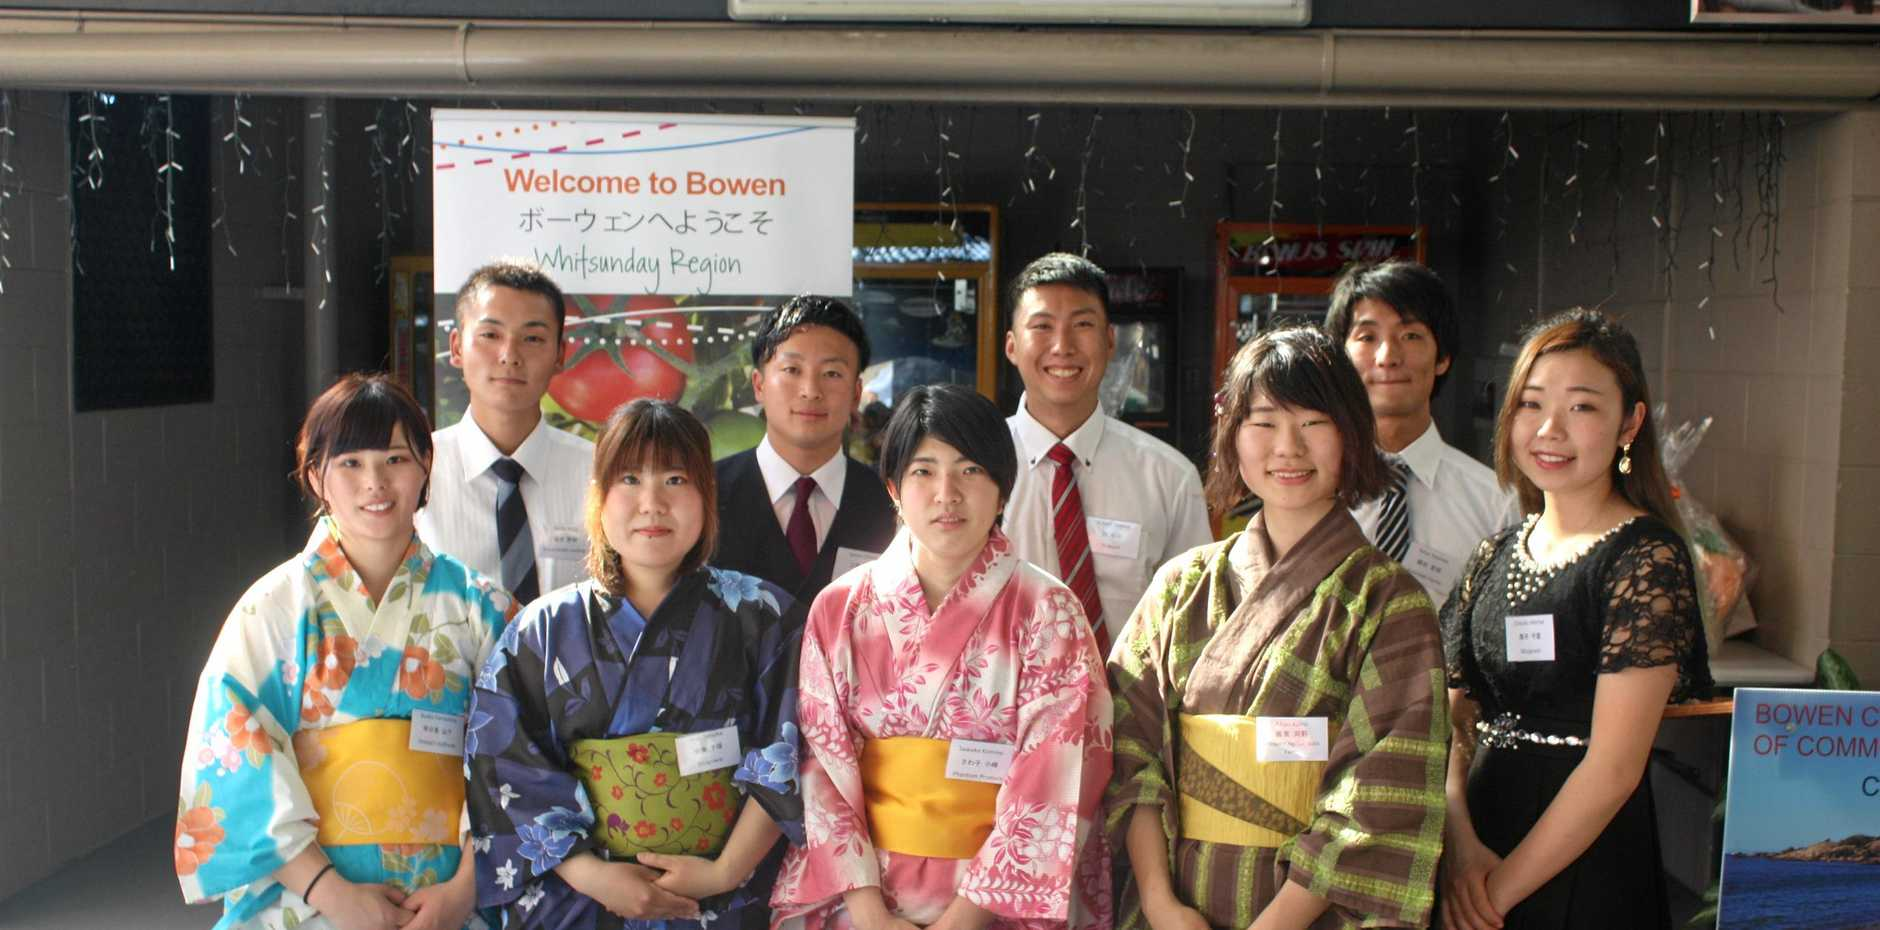 A group of nine Japanese students are in Bowen as part of an agriculture education program.